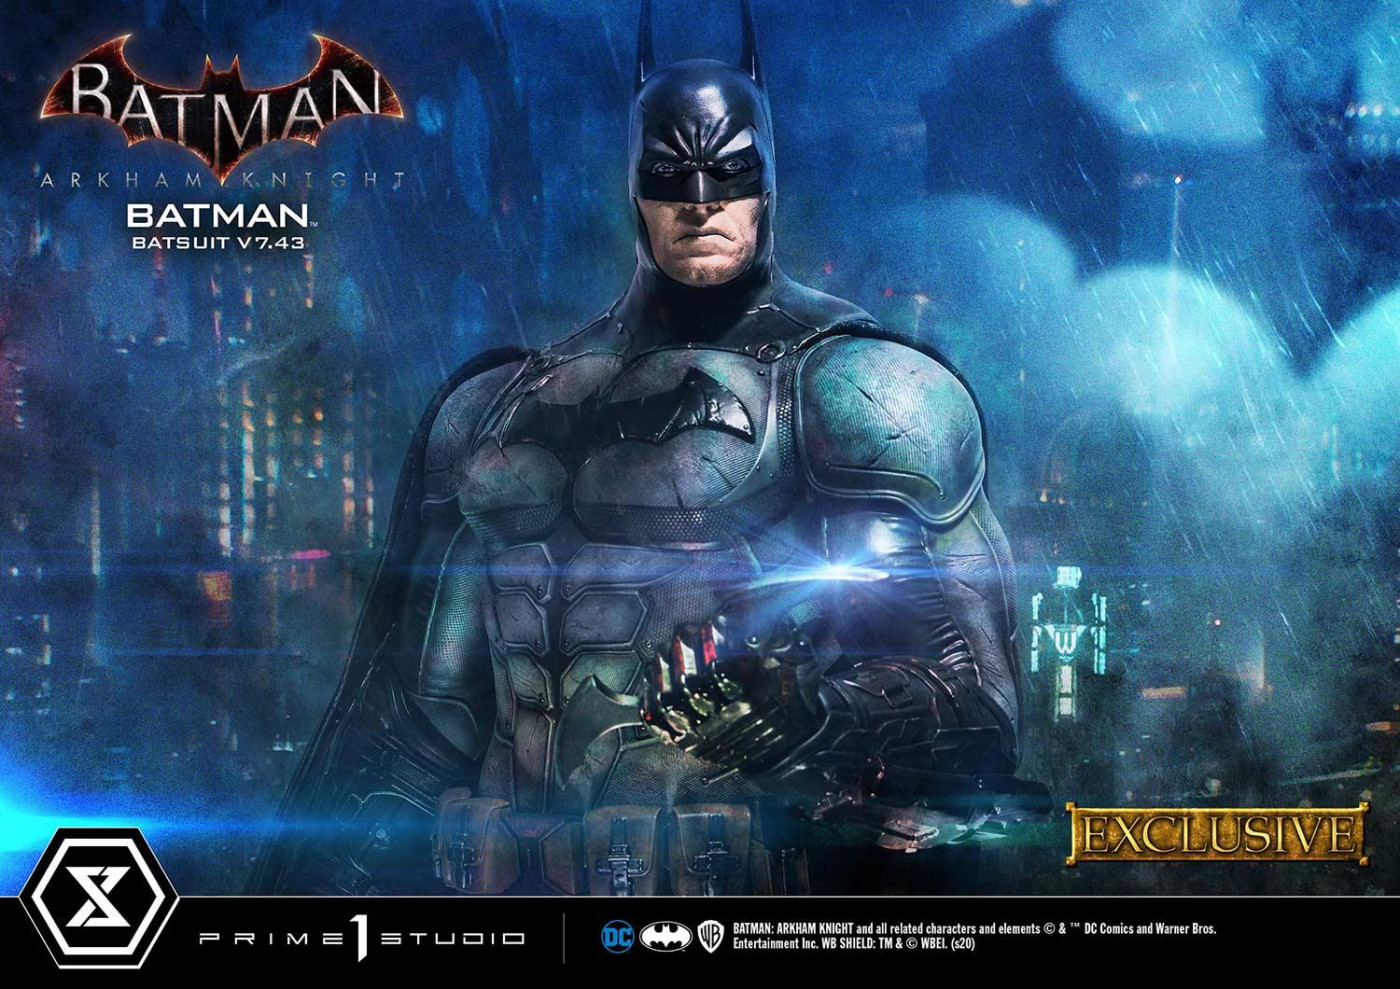 Museum Masterline Batman: Arkham Knight Batman Batsuit V7.43 EX Version